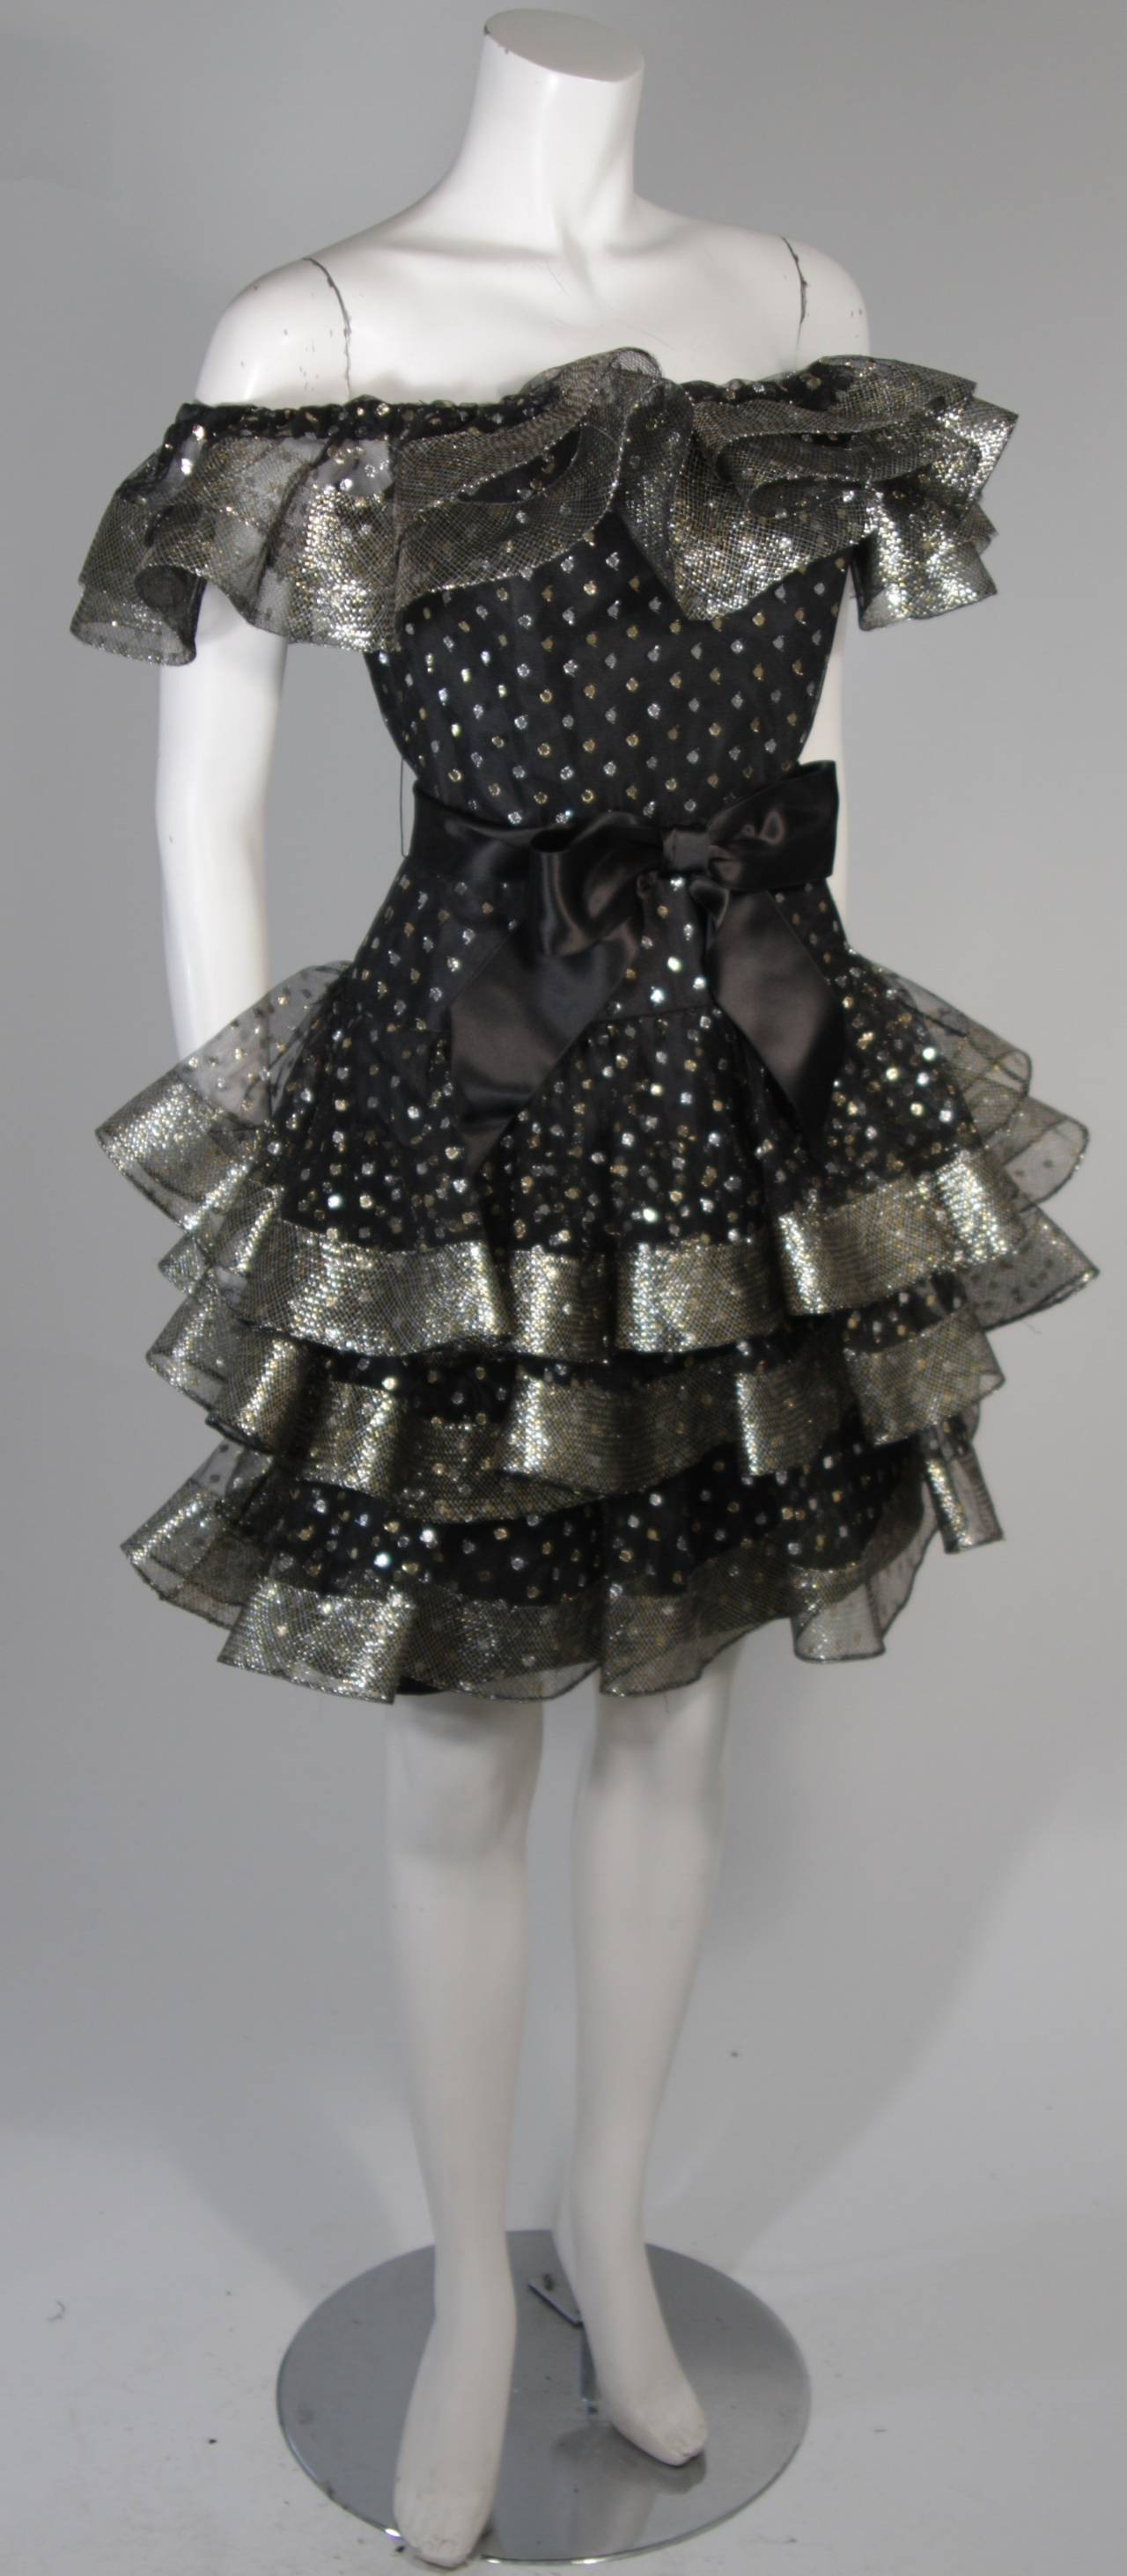 Victor Costa Black Ruffled Cocktail Dress with Silver and Gold Polka Dots Size 2 For Sale 1